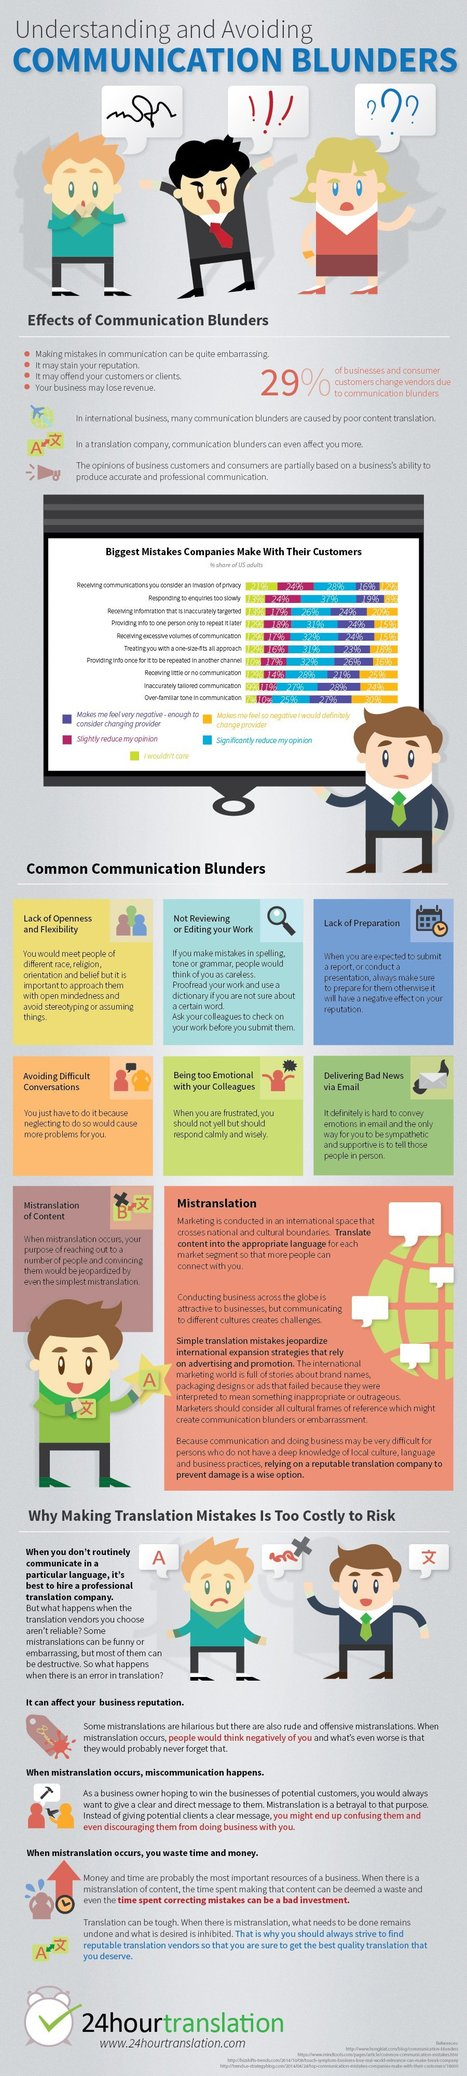 Understanding and Avoiding Communication Blunders | Infographics | Scoop.it